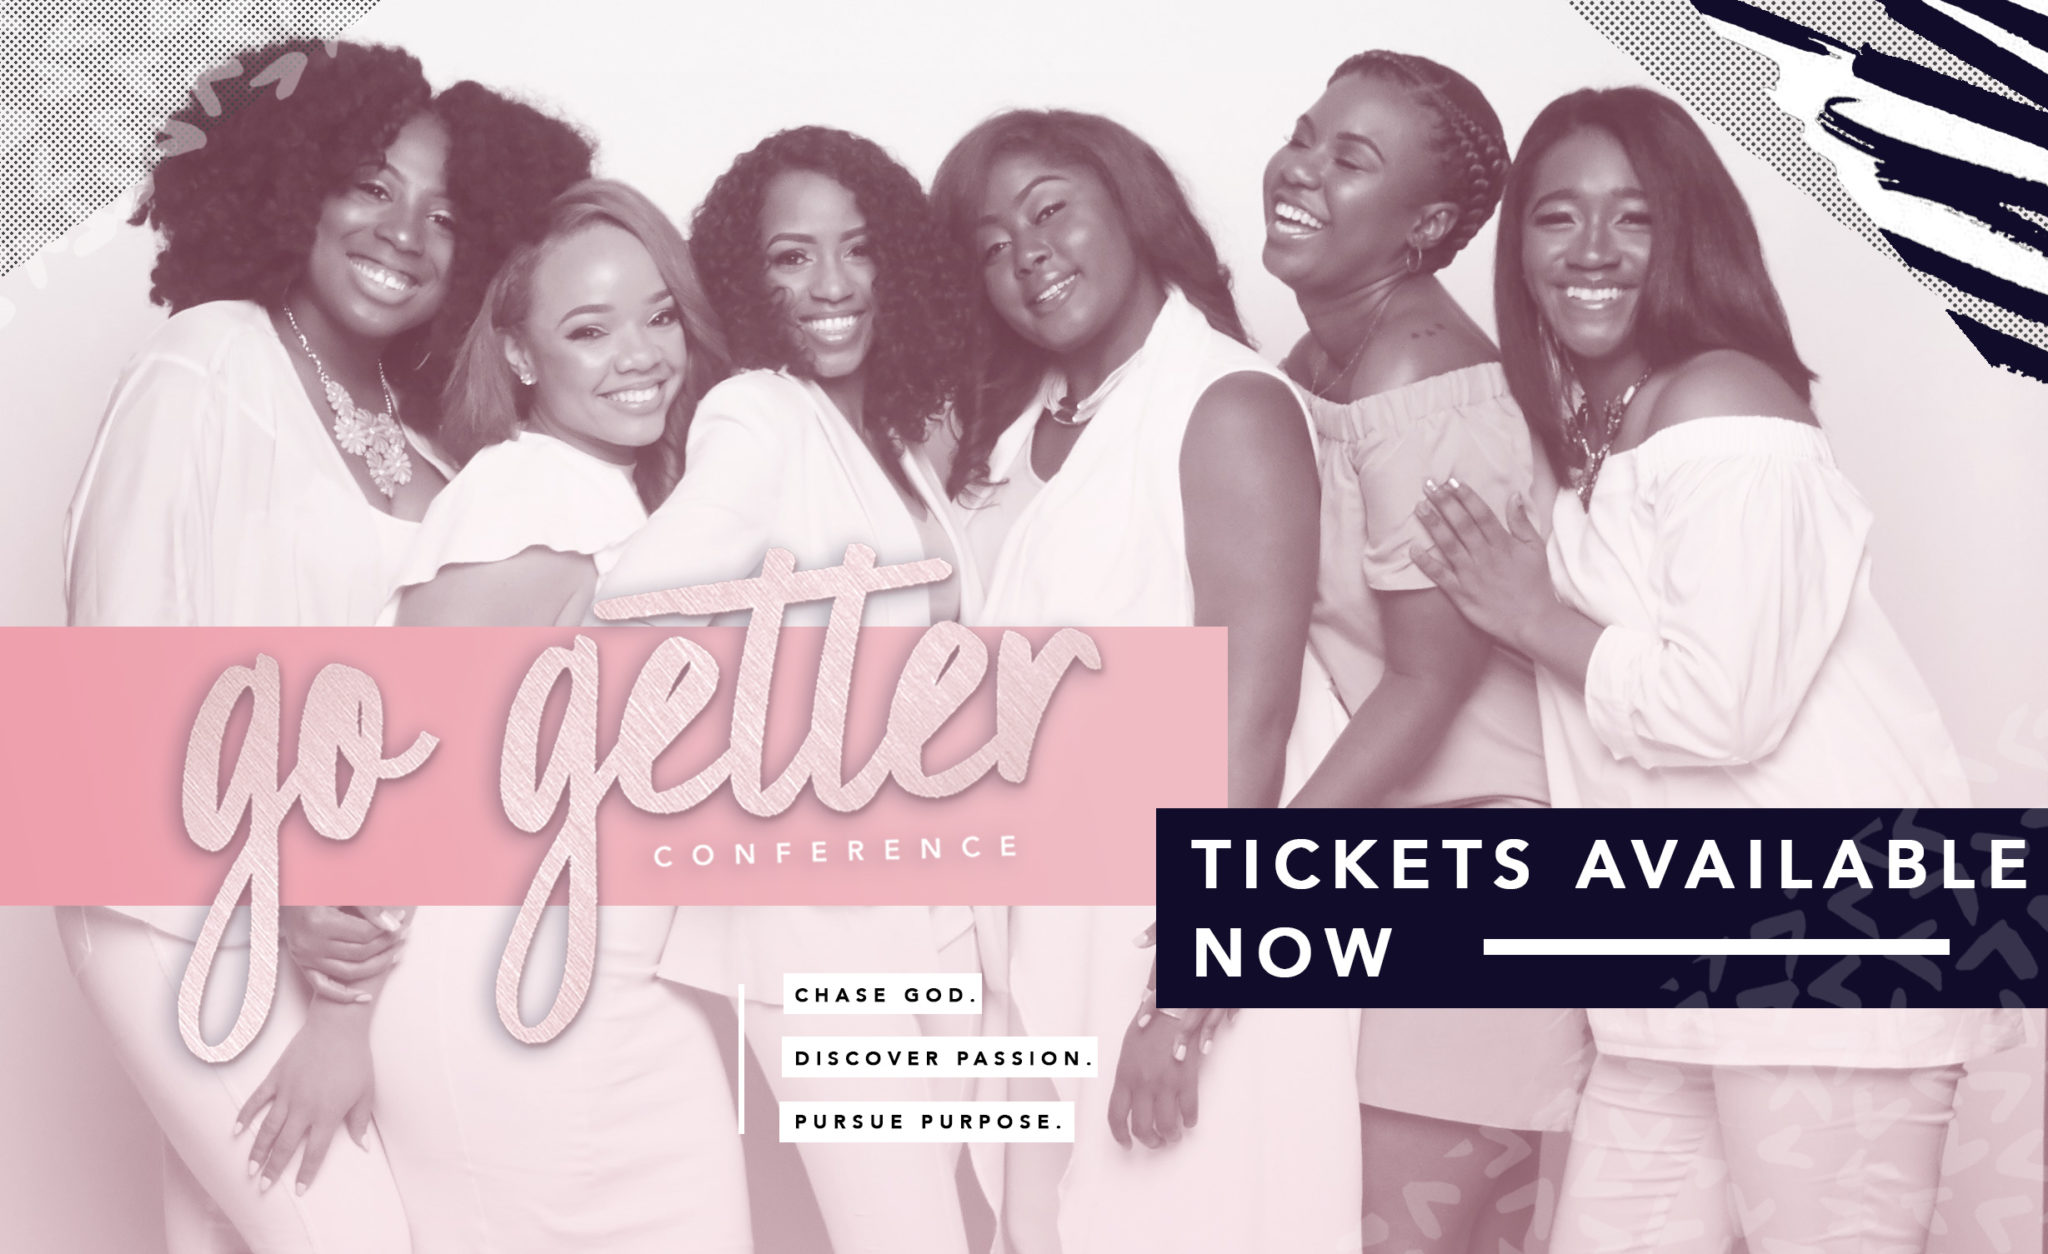 Go-Getter Conference 2019 | Epic Fab Girl